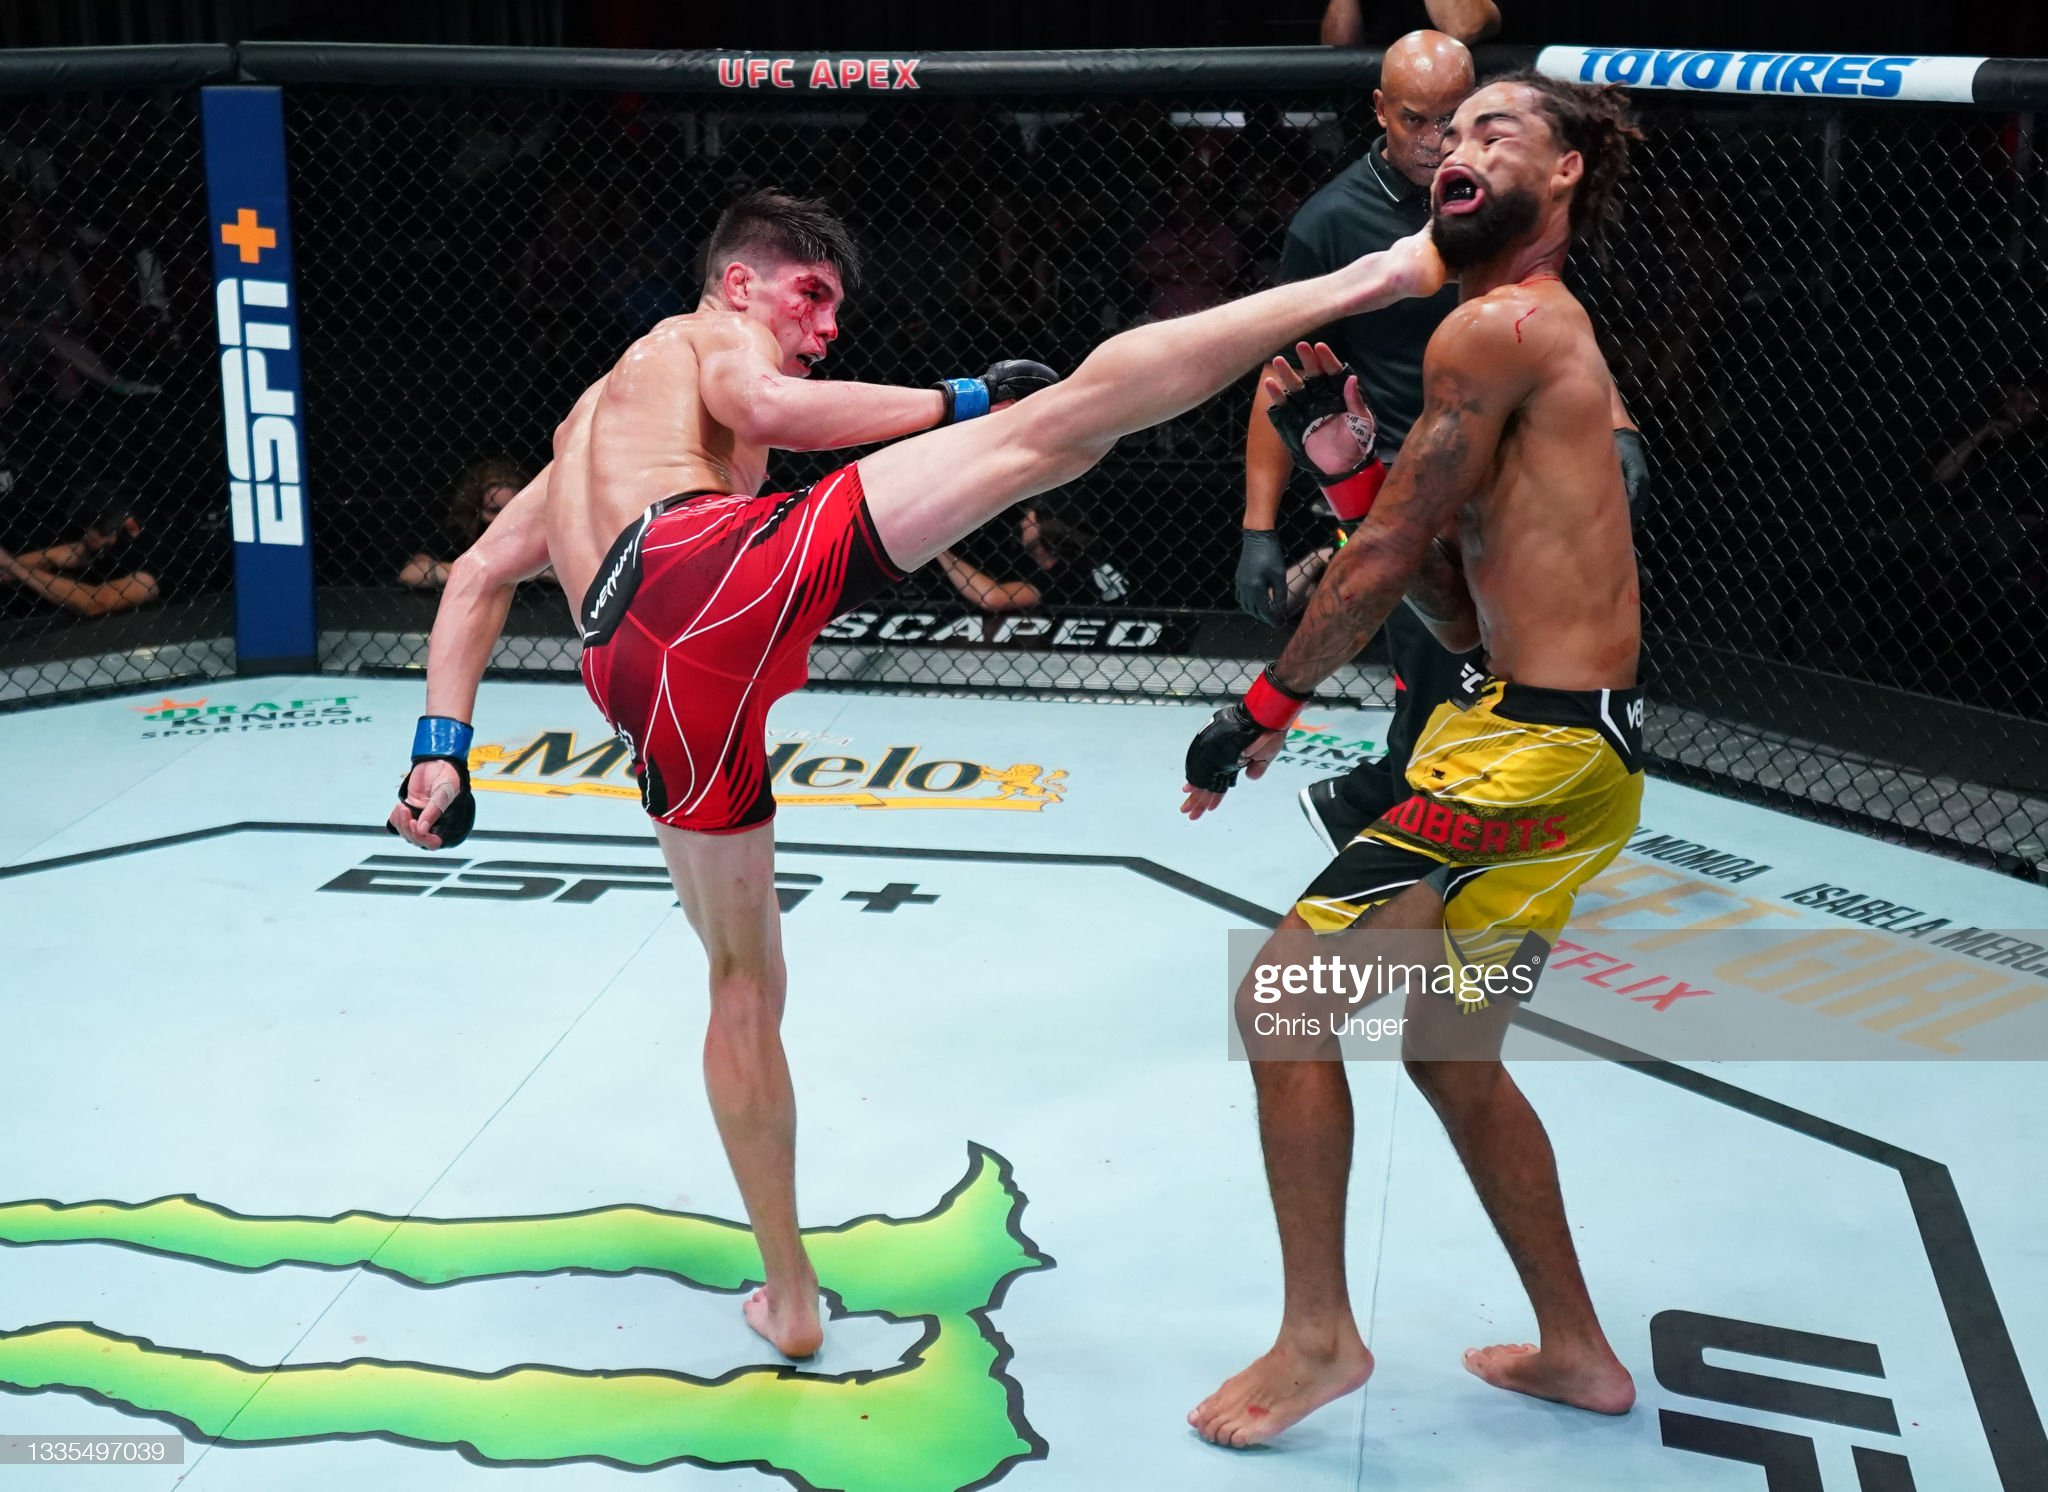 ignacio-bahamondes-of-chile-knocks-out-roosevelt-roberts-with-a-kick-picture-id1335497039